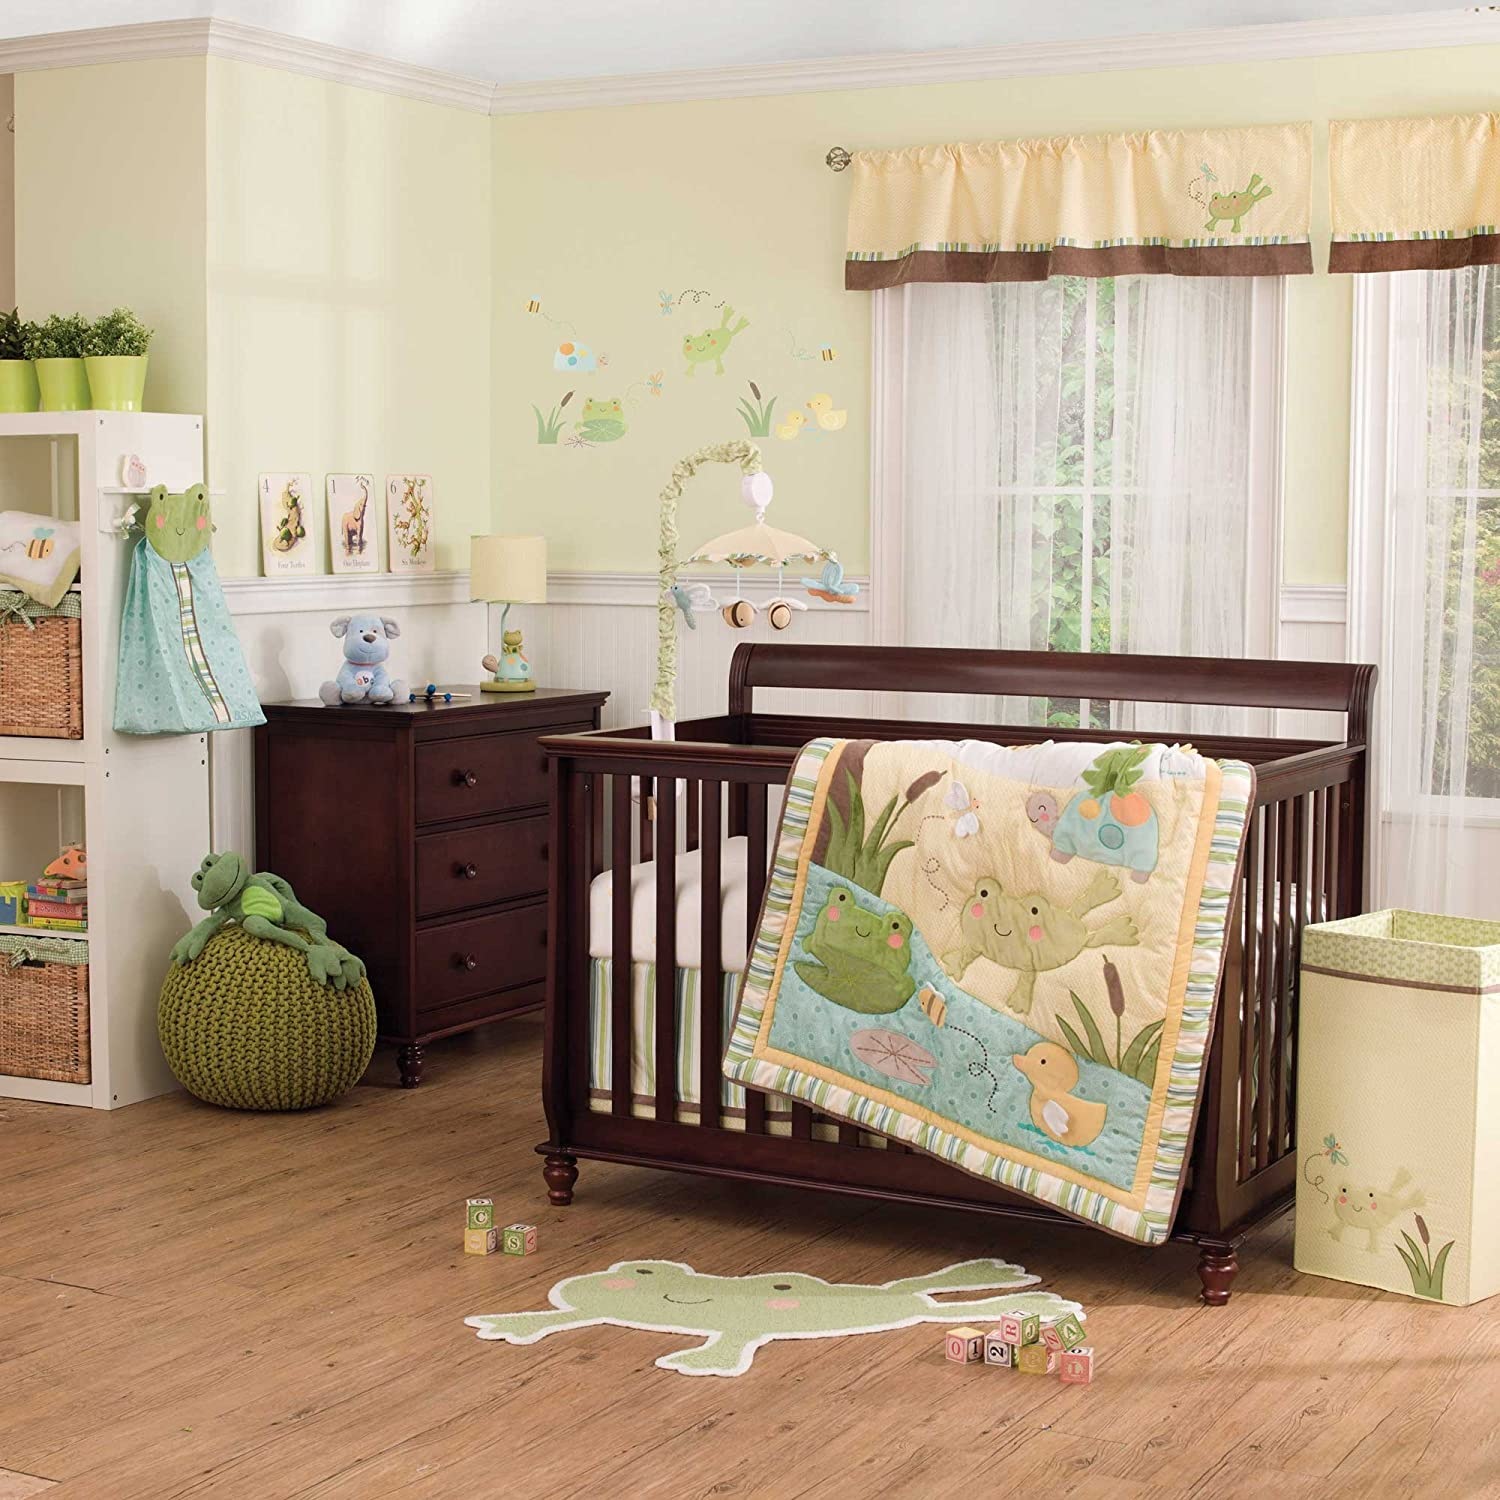 Carters In the Pond Crib Bedding